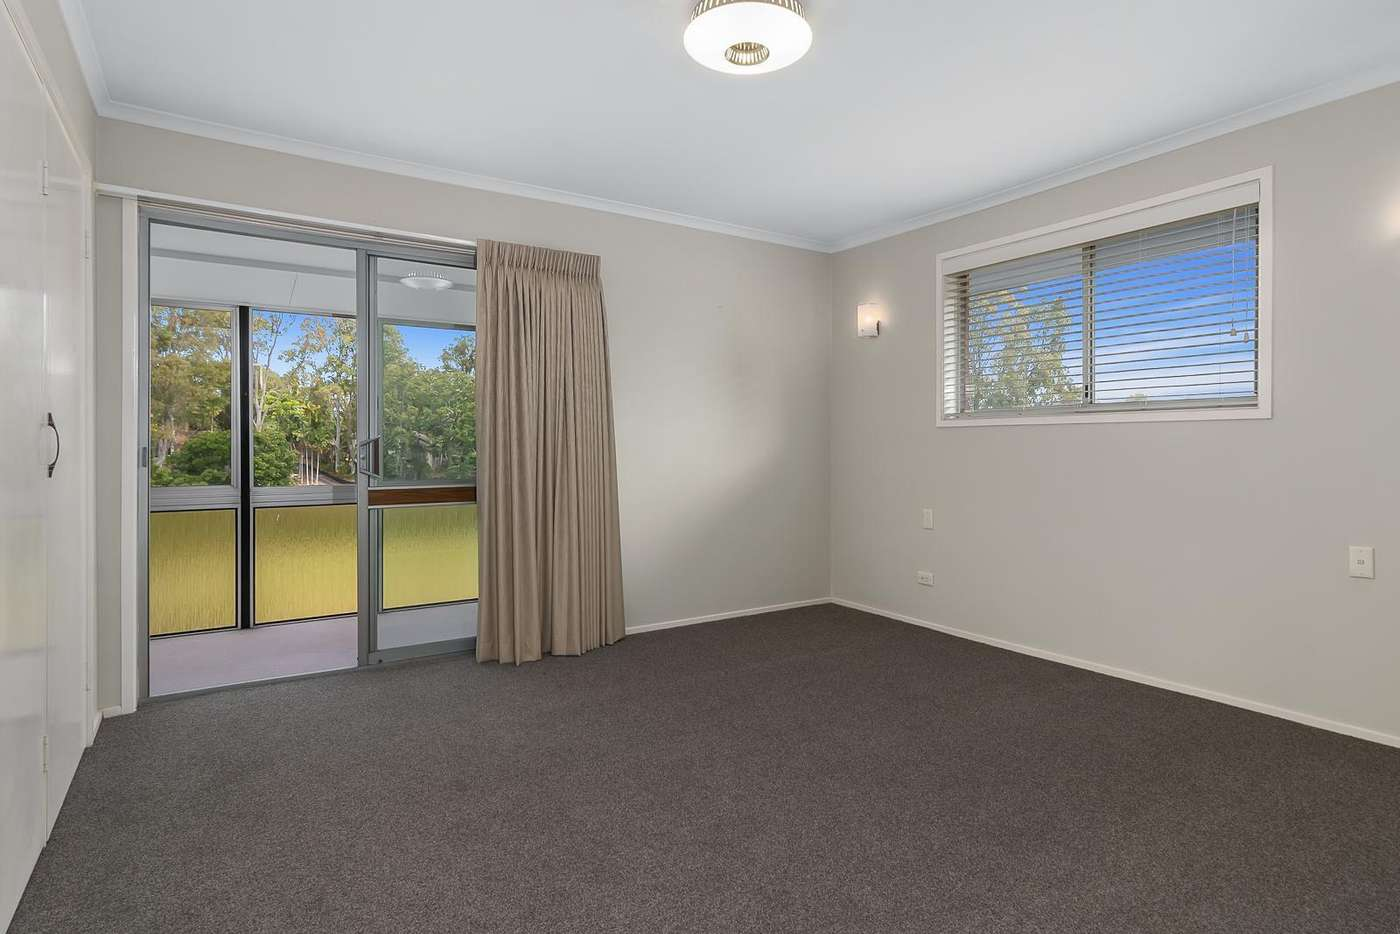 Sixth view of Homely house listing, 12-14 Burnside Court, Ashmore QLD 4214